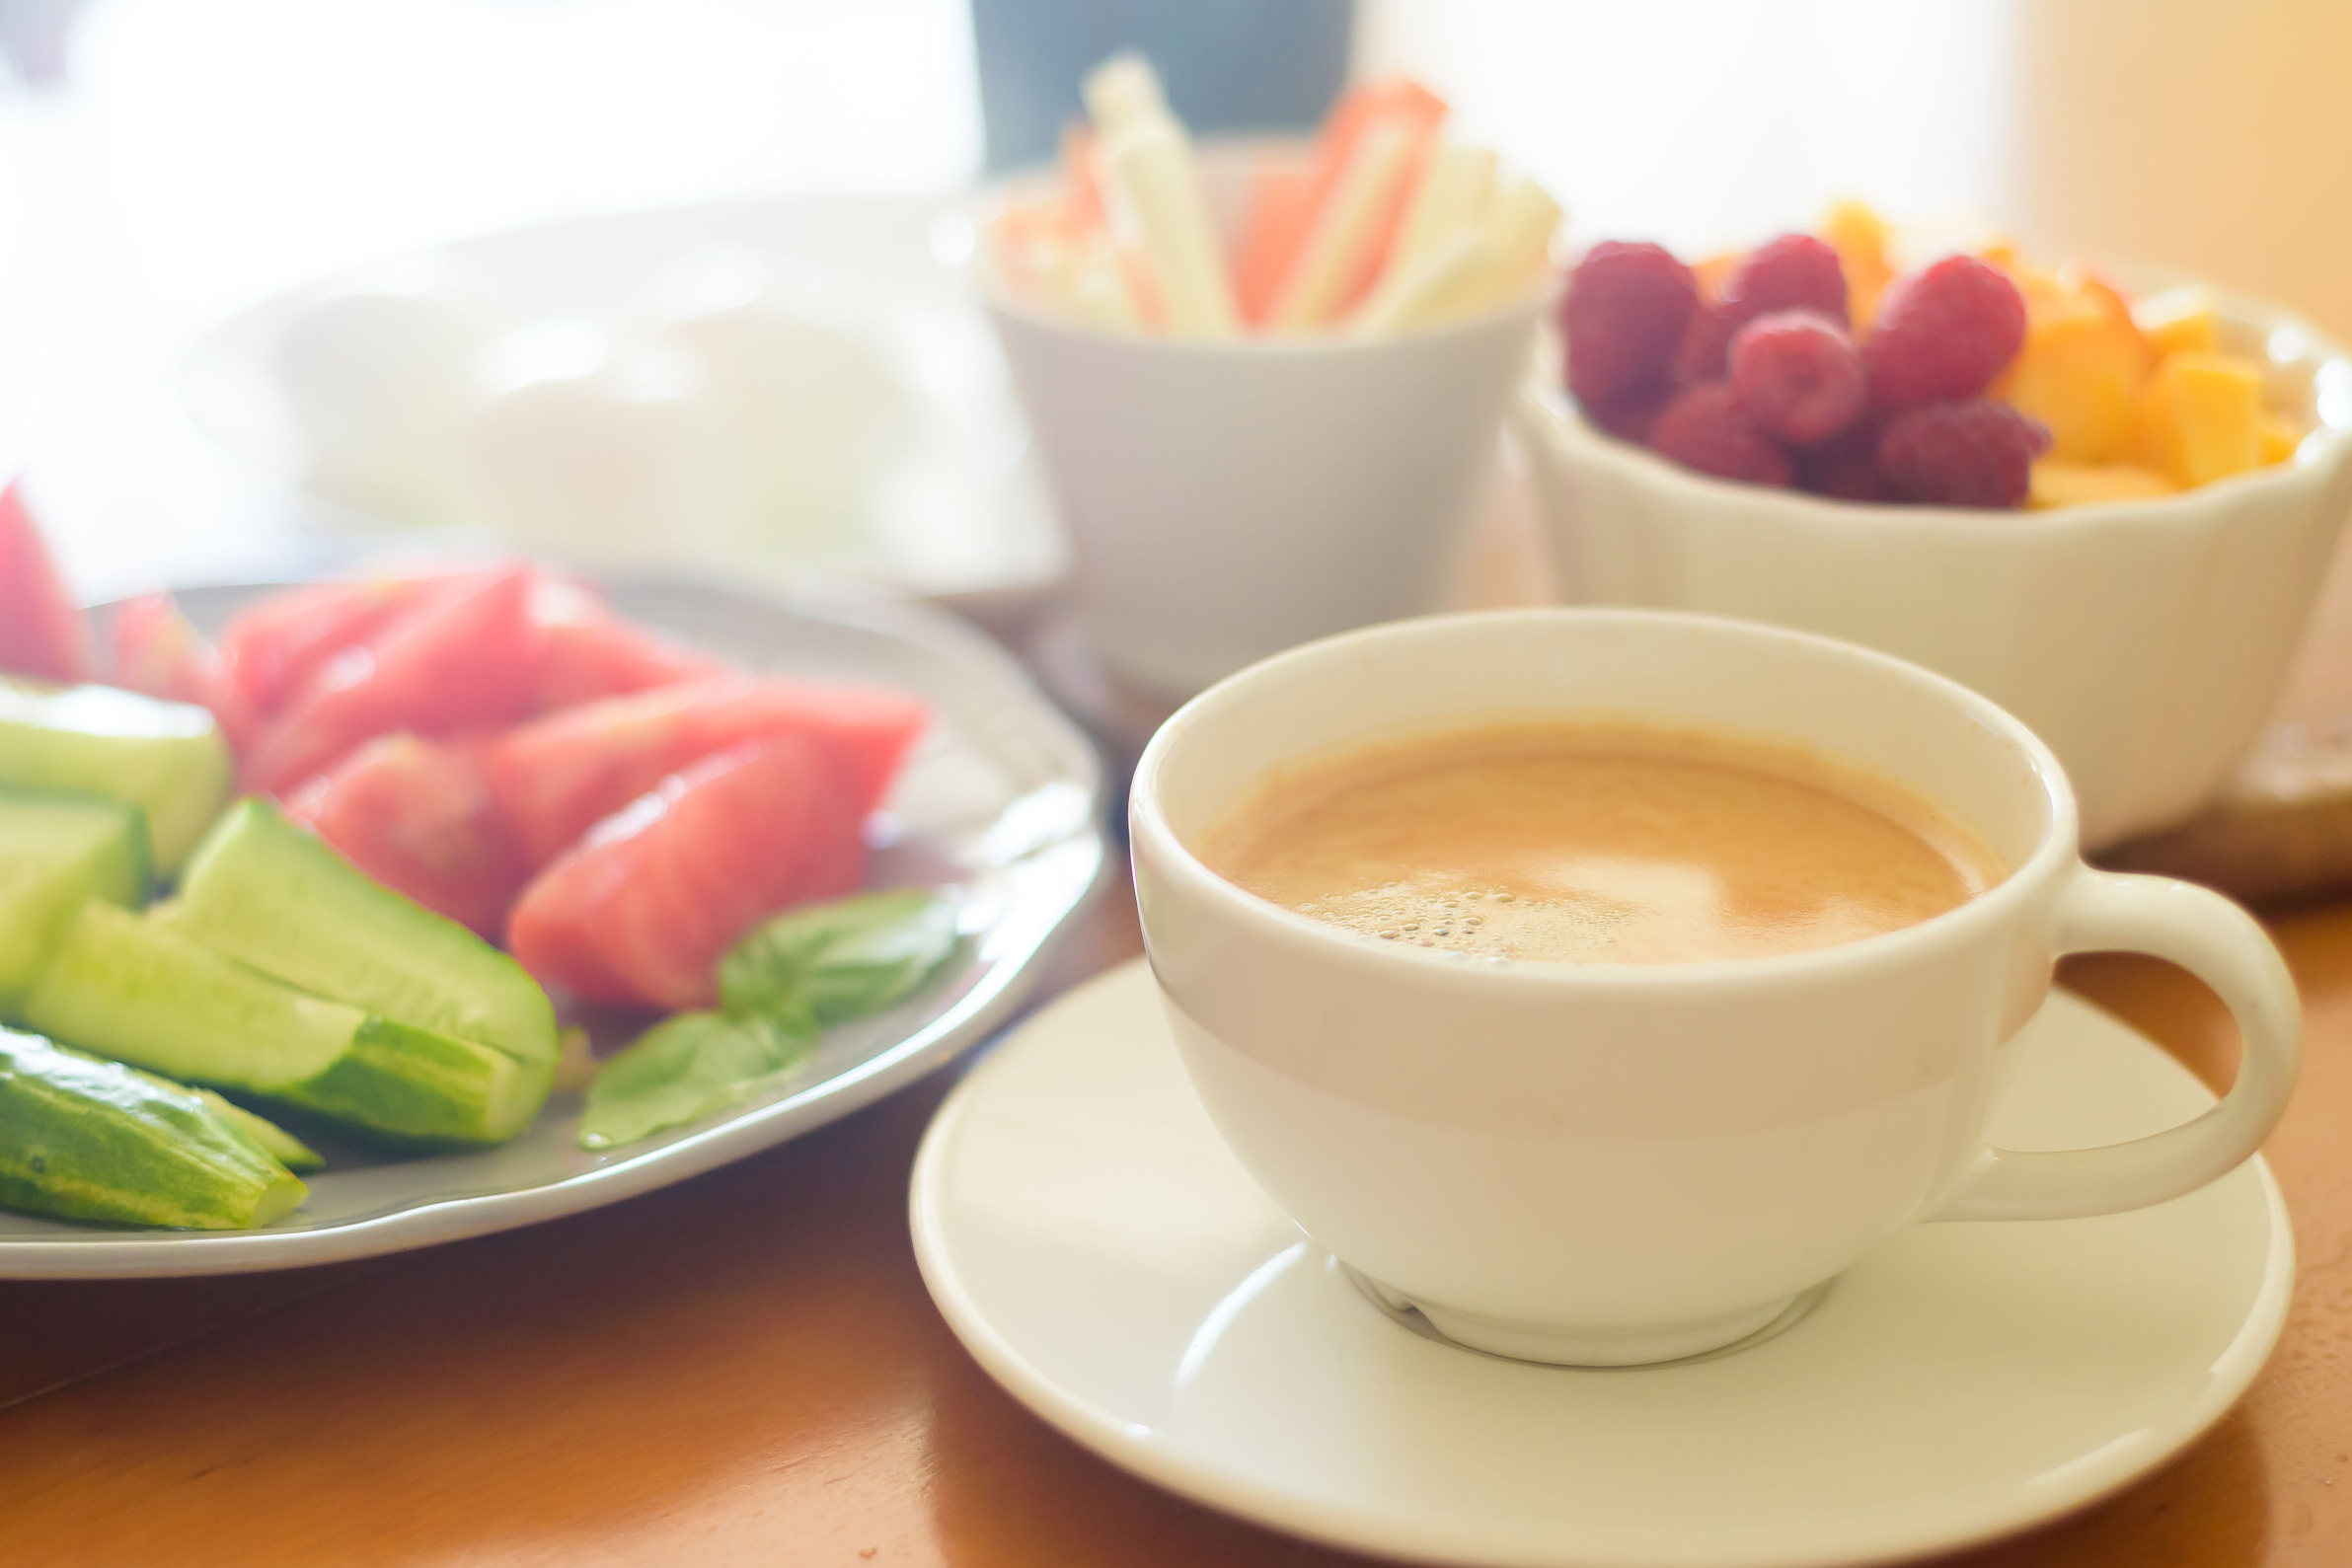 Breakfast with coffee, vegetables and fruits